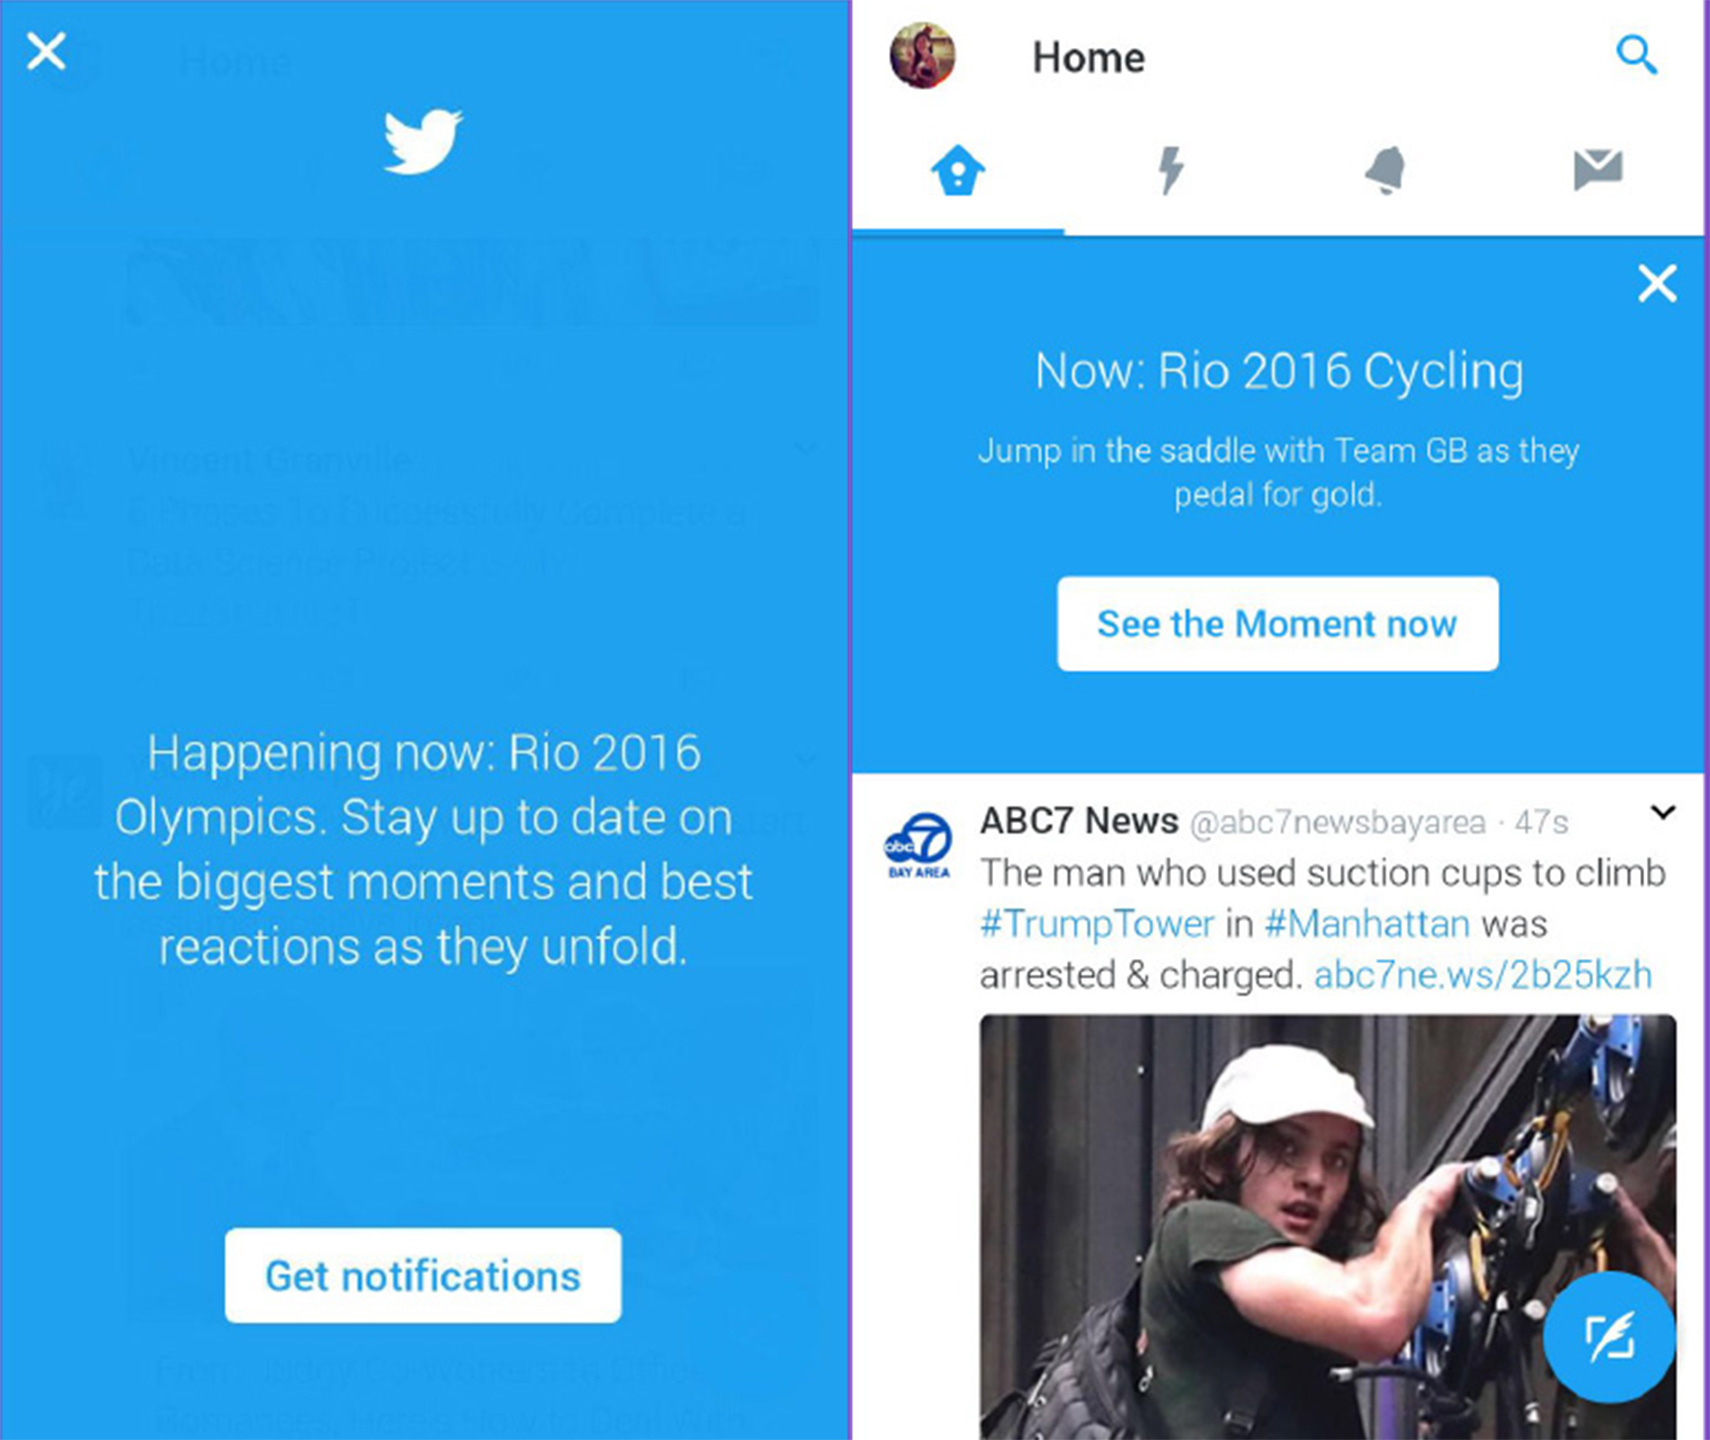 In-app UMF's optimised to drive users to opt-in to notifications about the Rio Olympics, and to drive to Twitter Moments.